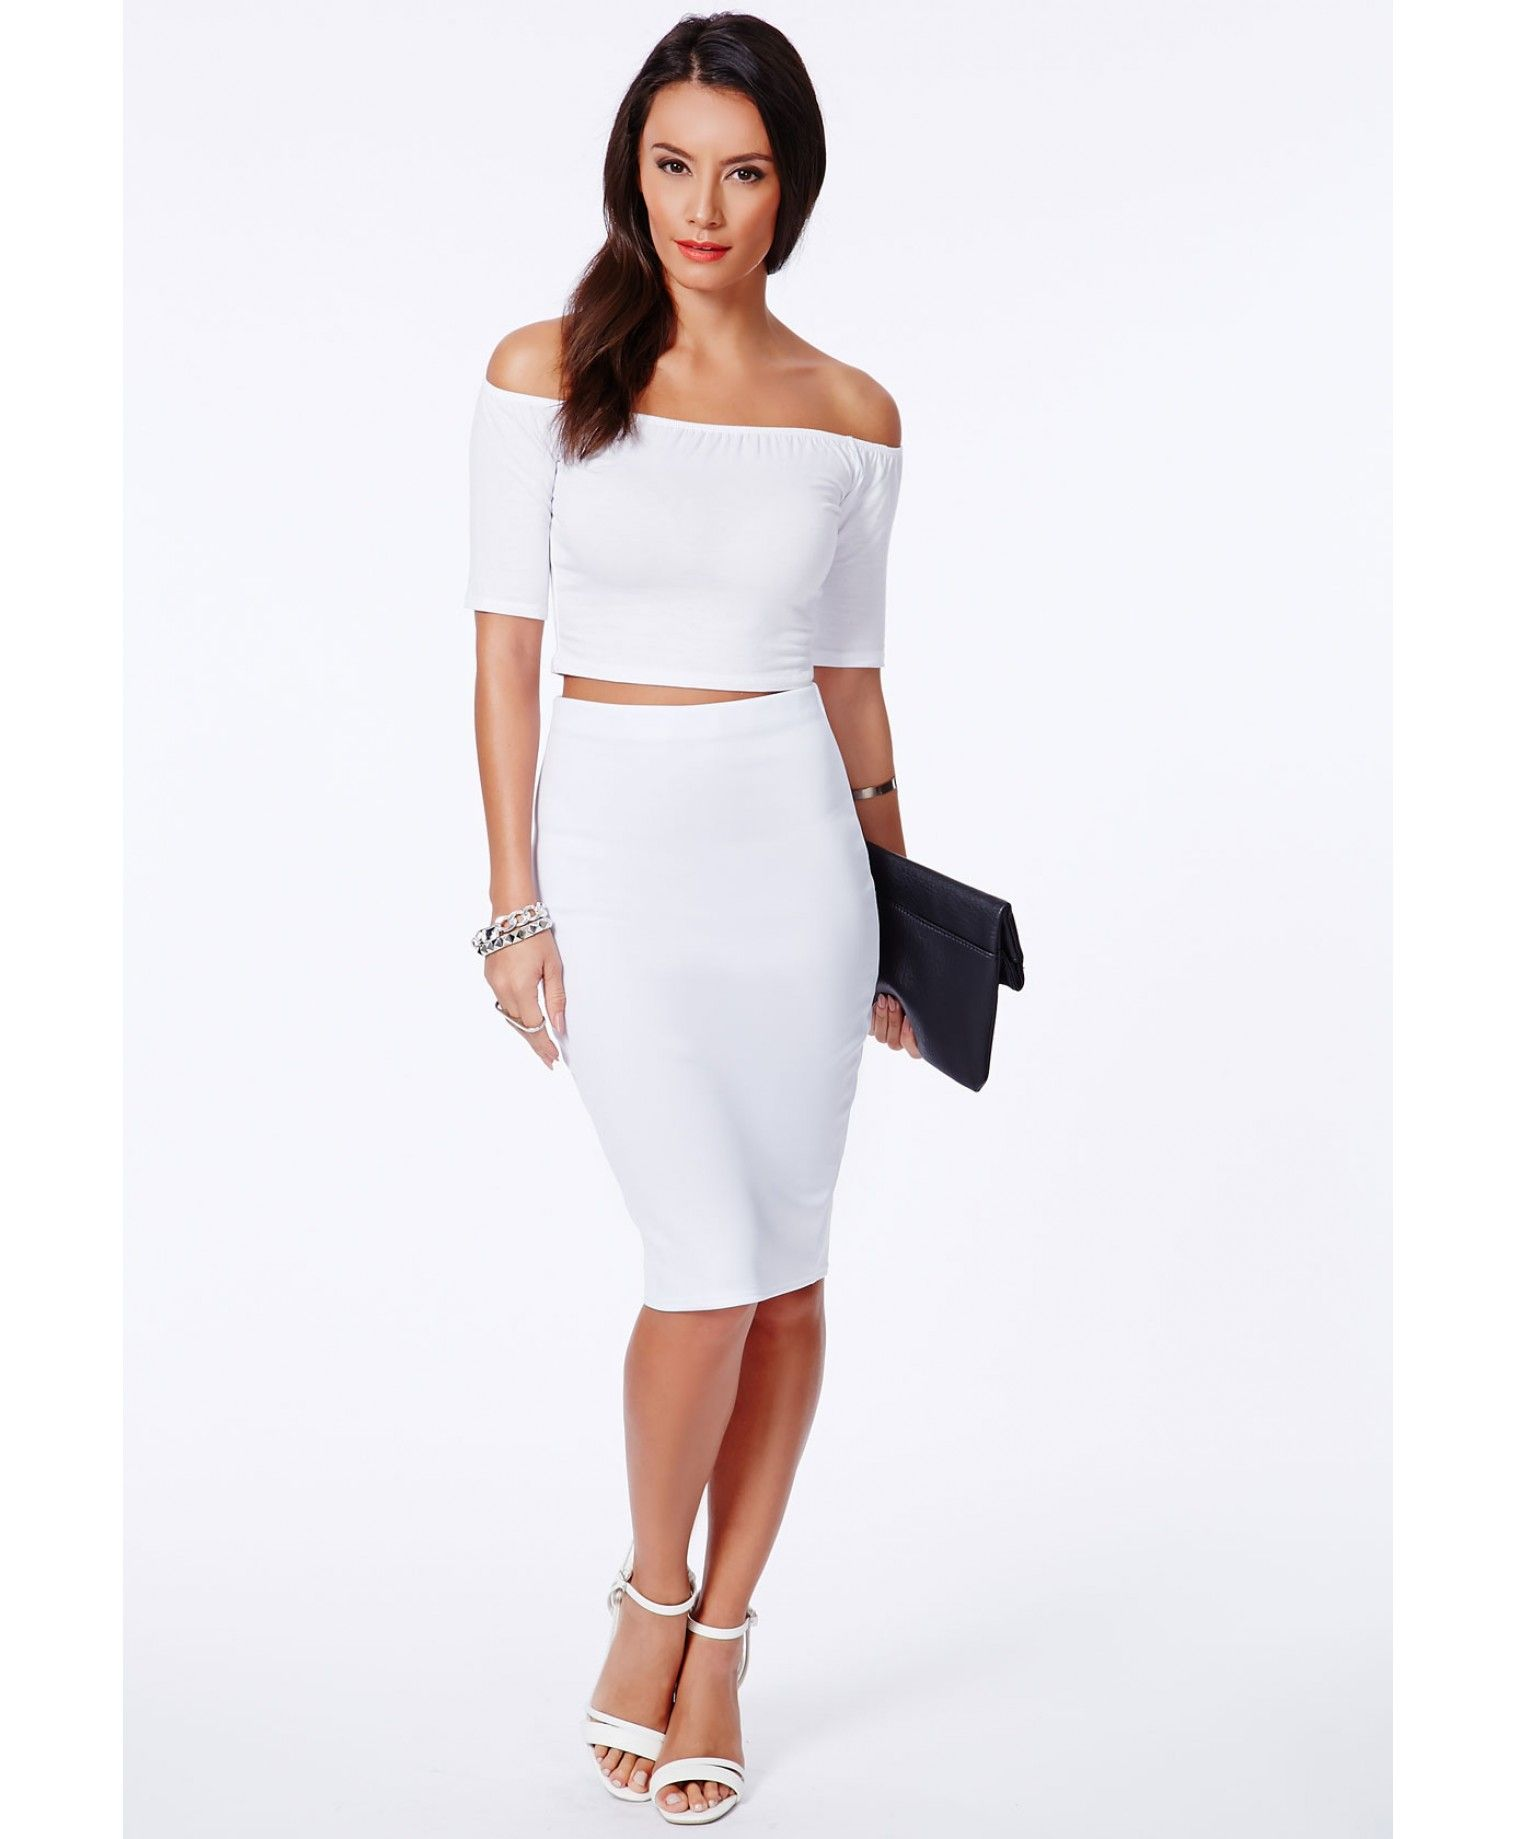 White Pencil Midi Skirt | Outfitsbible | White Skirt | Pinterest ...